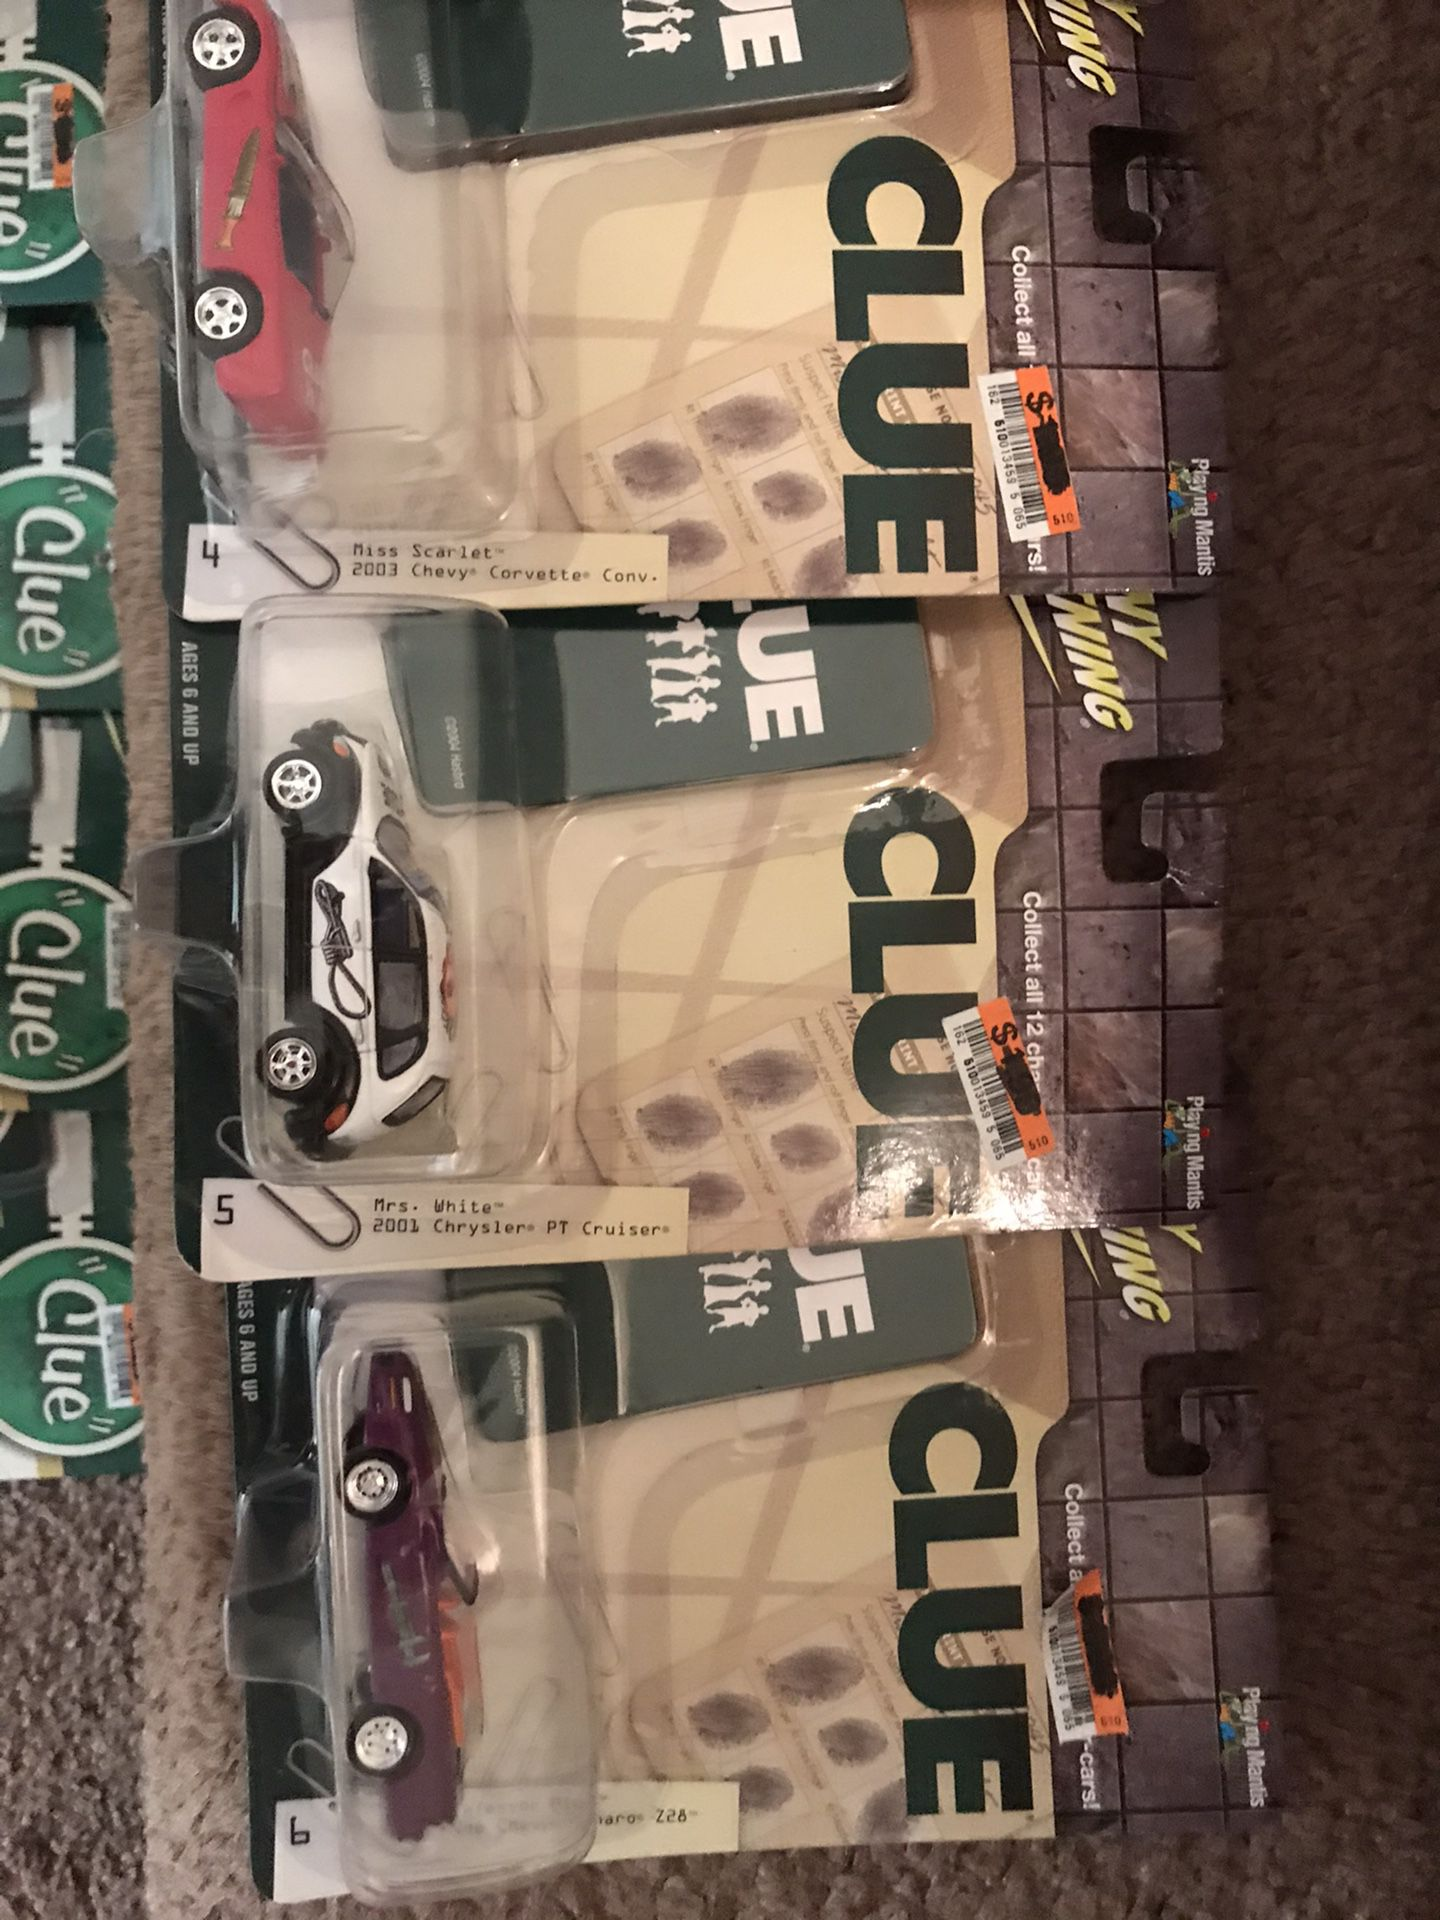 2004-(Clue w/ game cards) 13 Johnny Lightening 1:64 cars